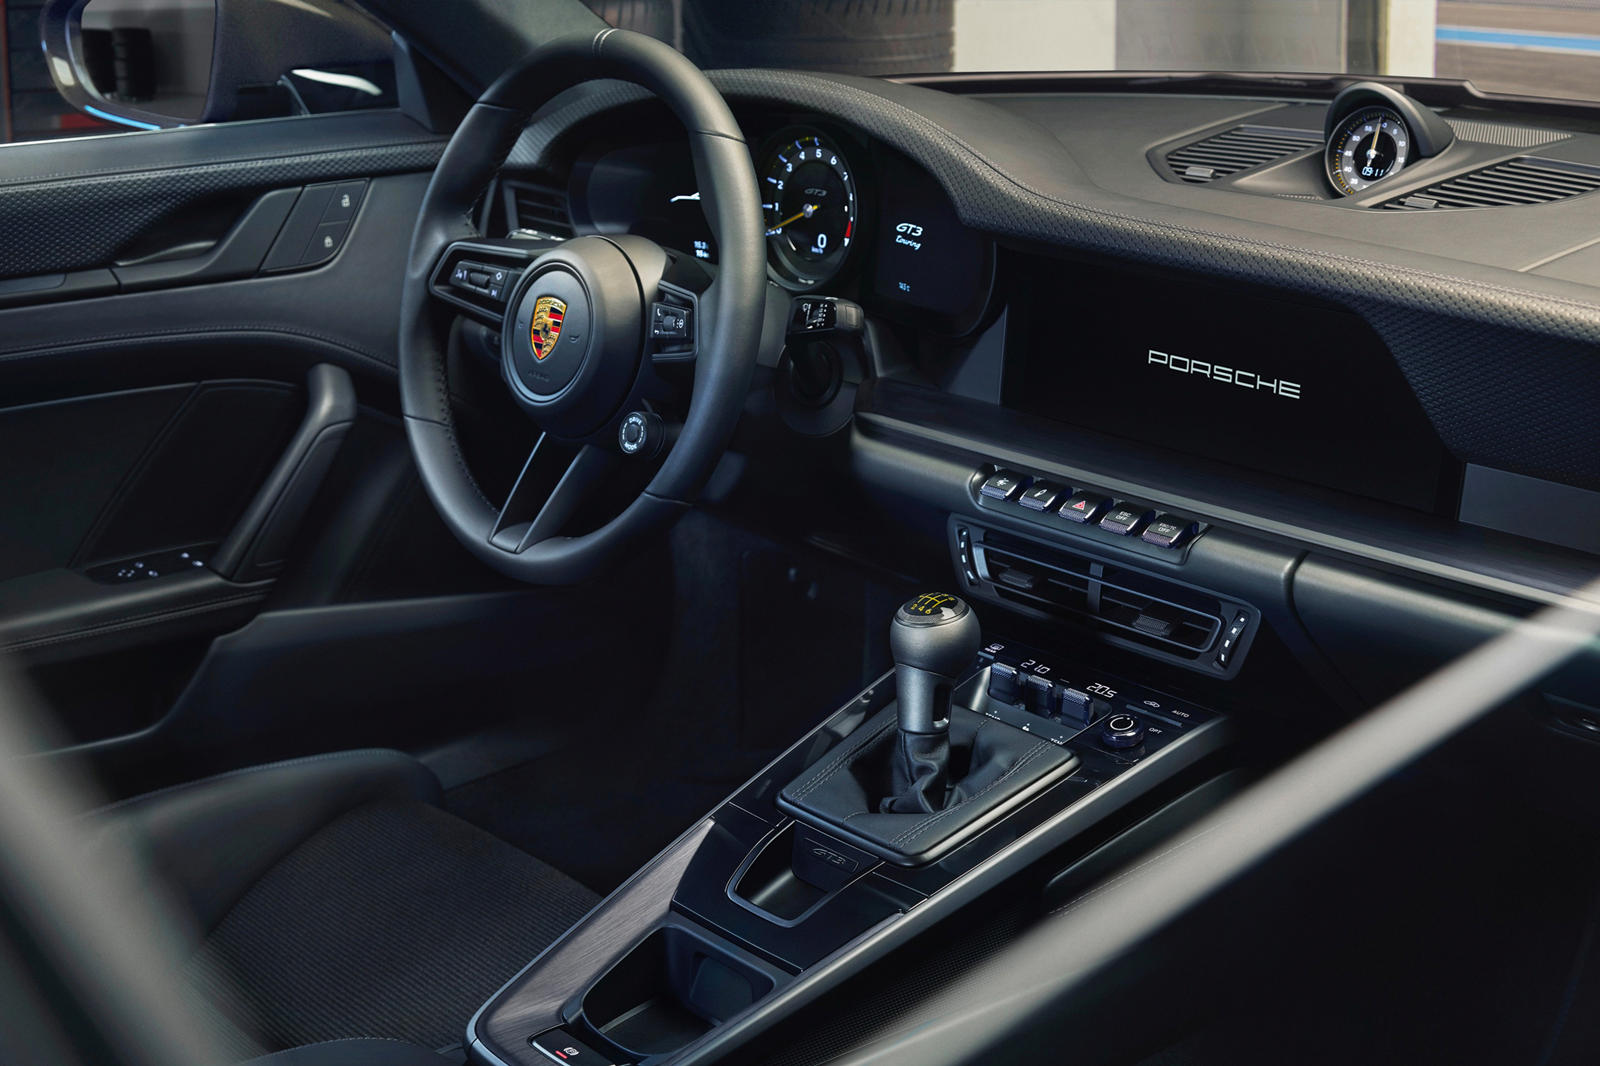 Porsche Wins! Manual 911 GT3 Will Be Sold In California